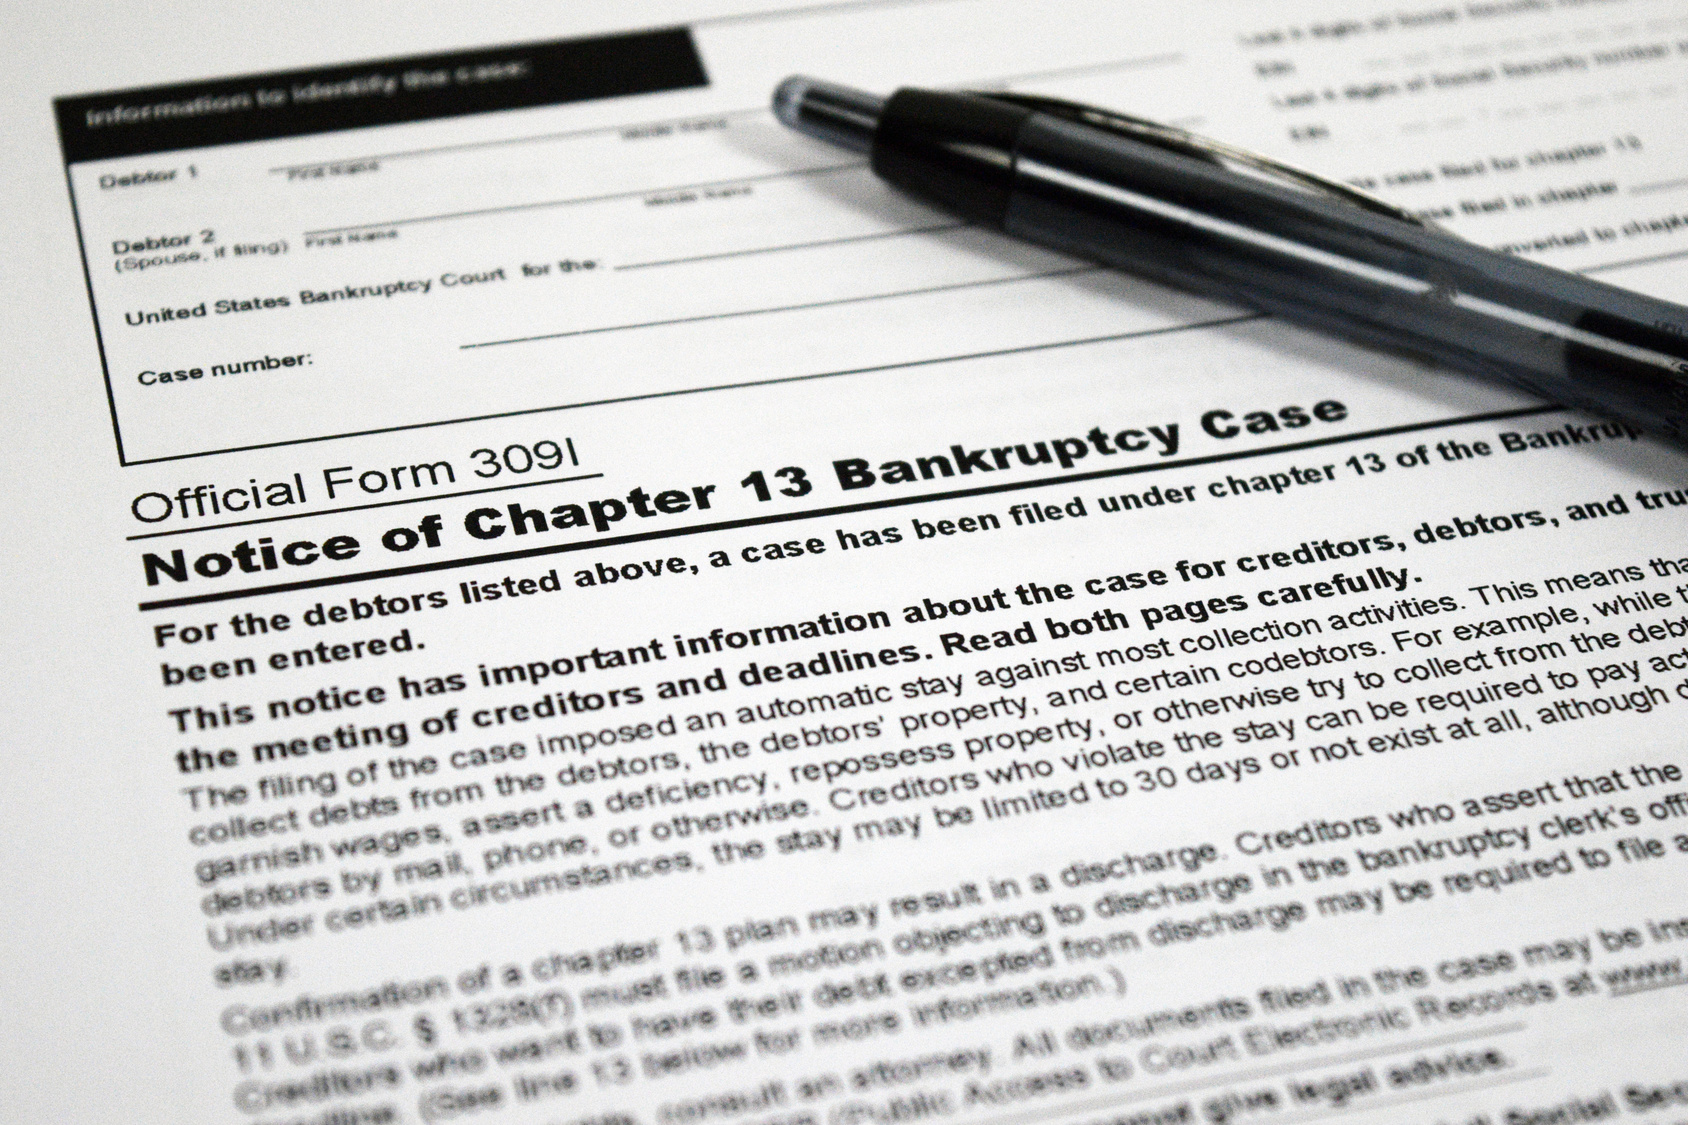 U.S. Supreme Court Upholds Viability of Chapter 13 Bankruptcy